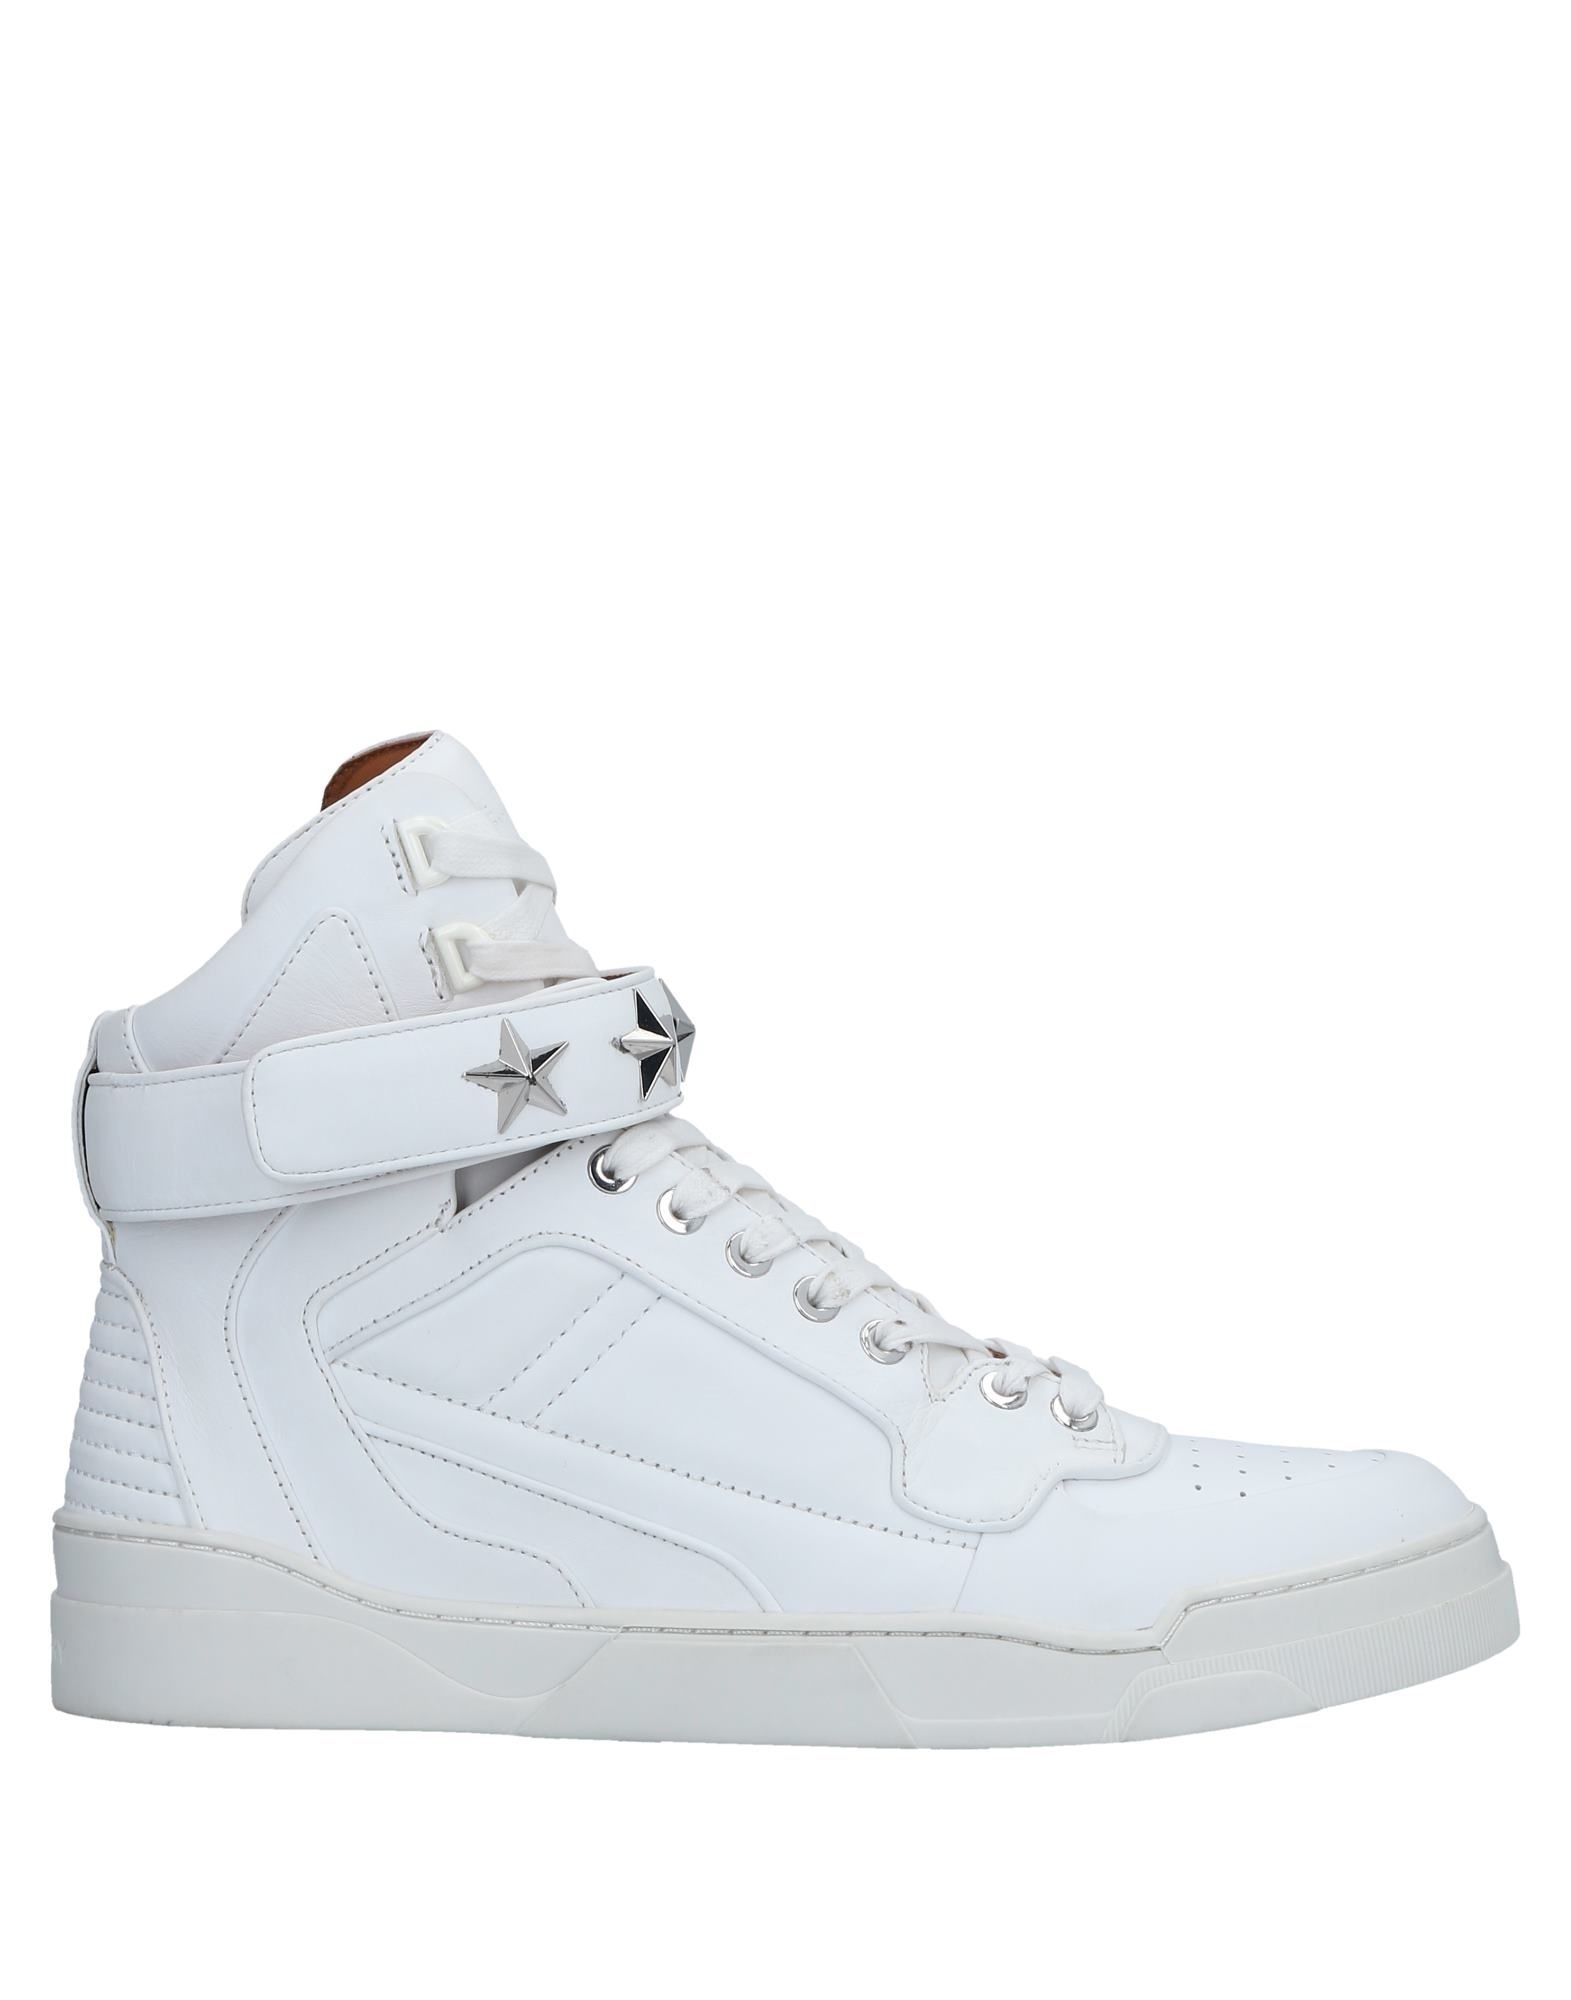 Sneakers Givenchy Donna - 11521239SH elegante